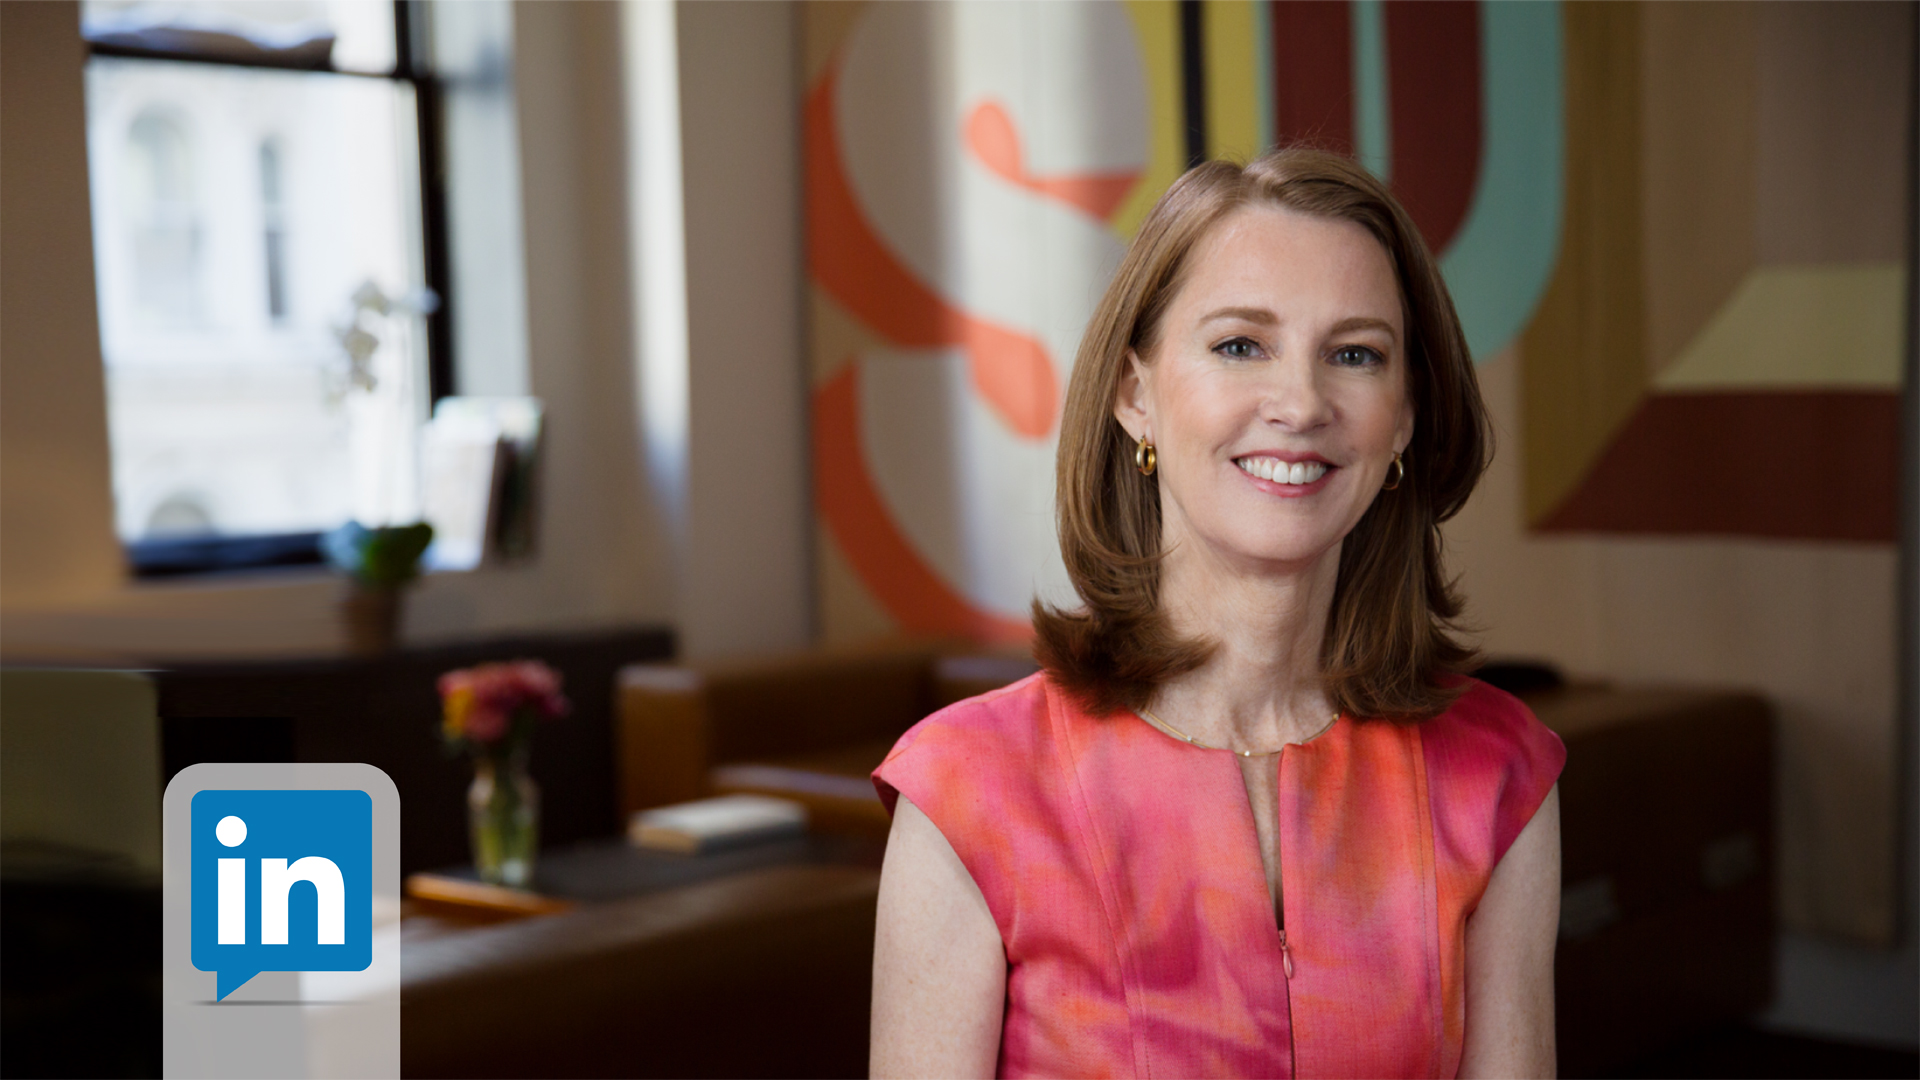 Obligers: Gretchen Rubin on Creating Great Workplace Habits